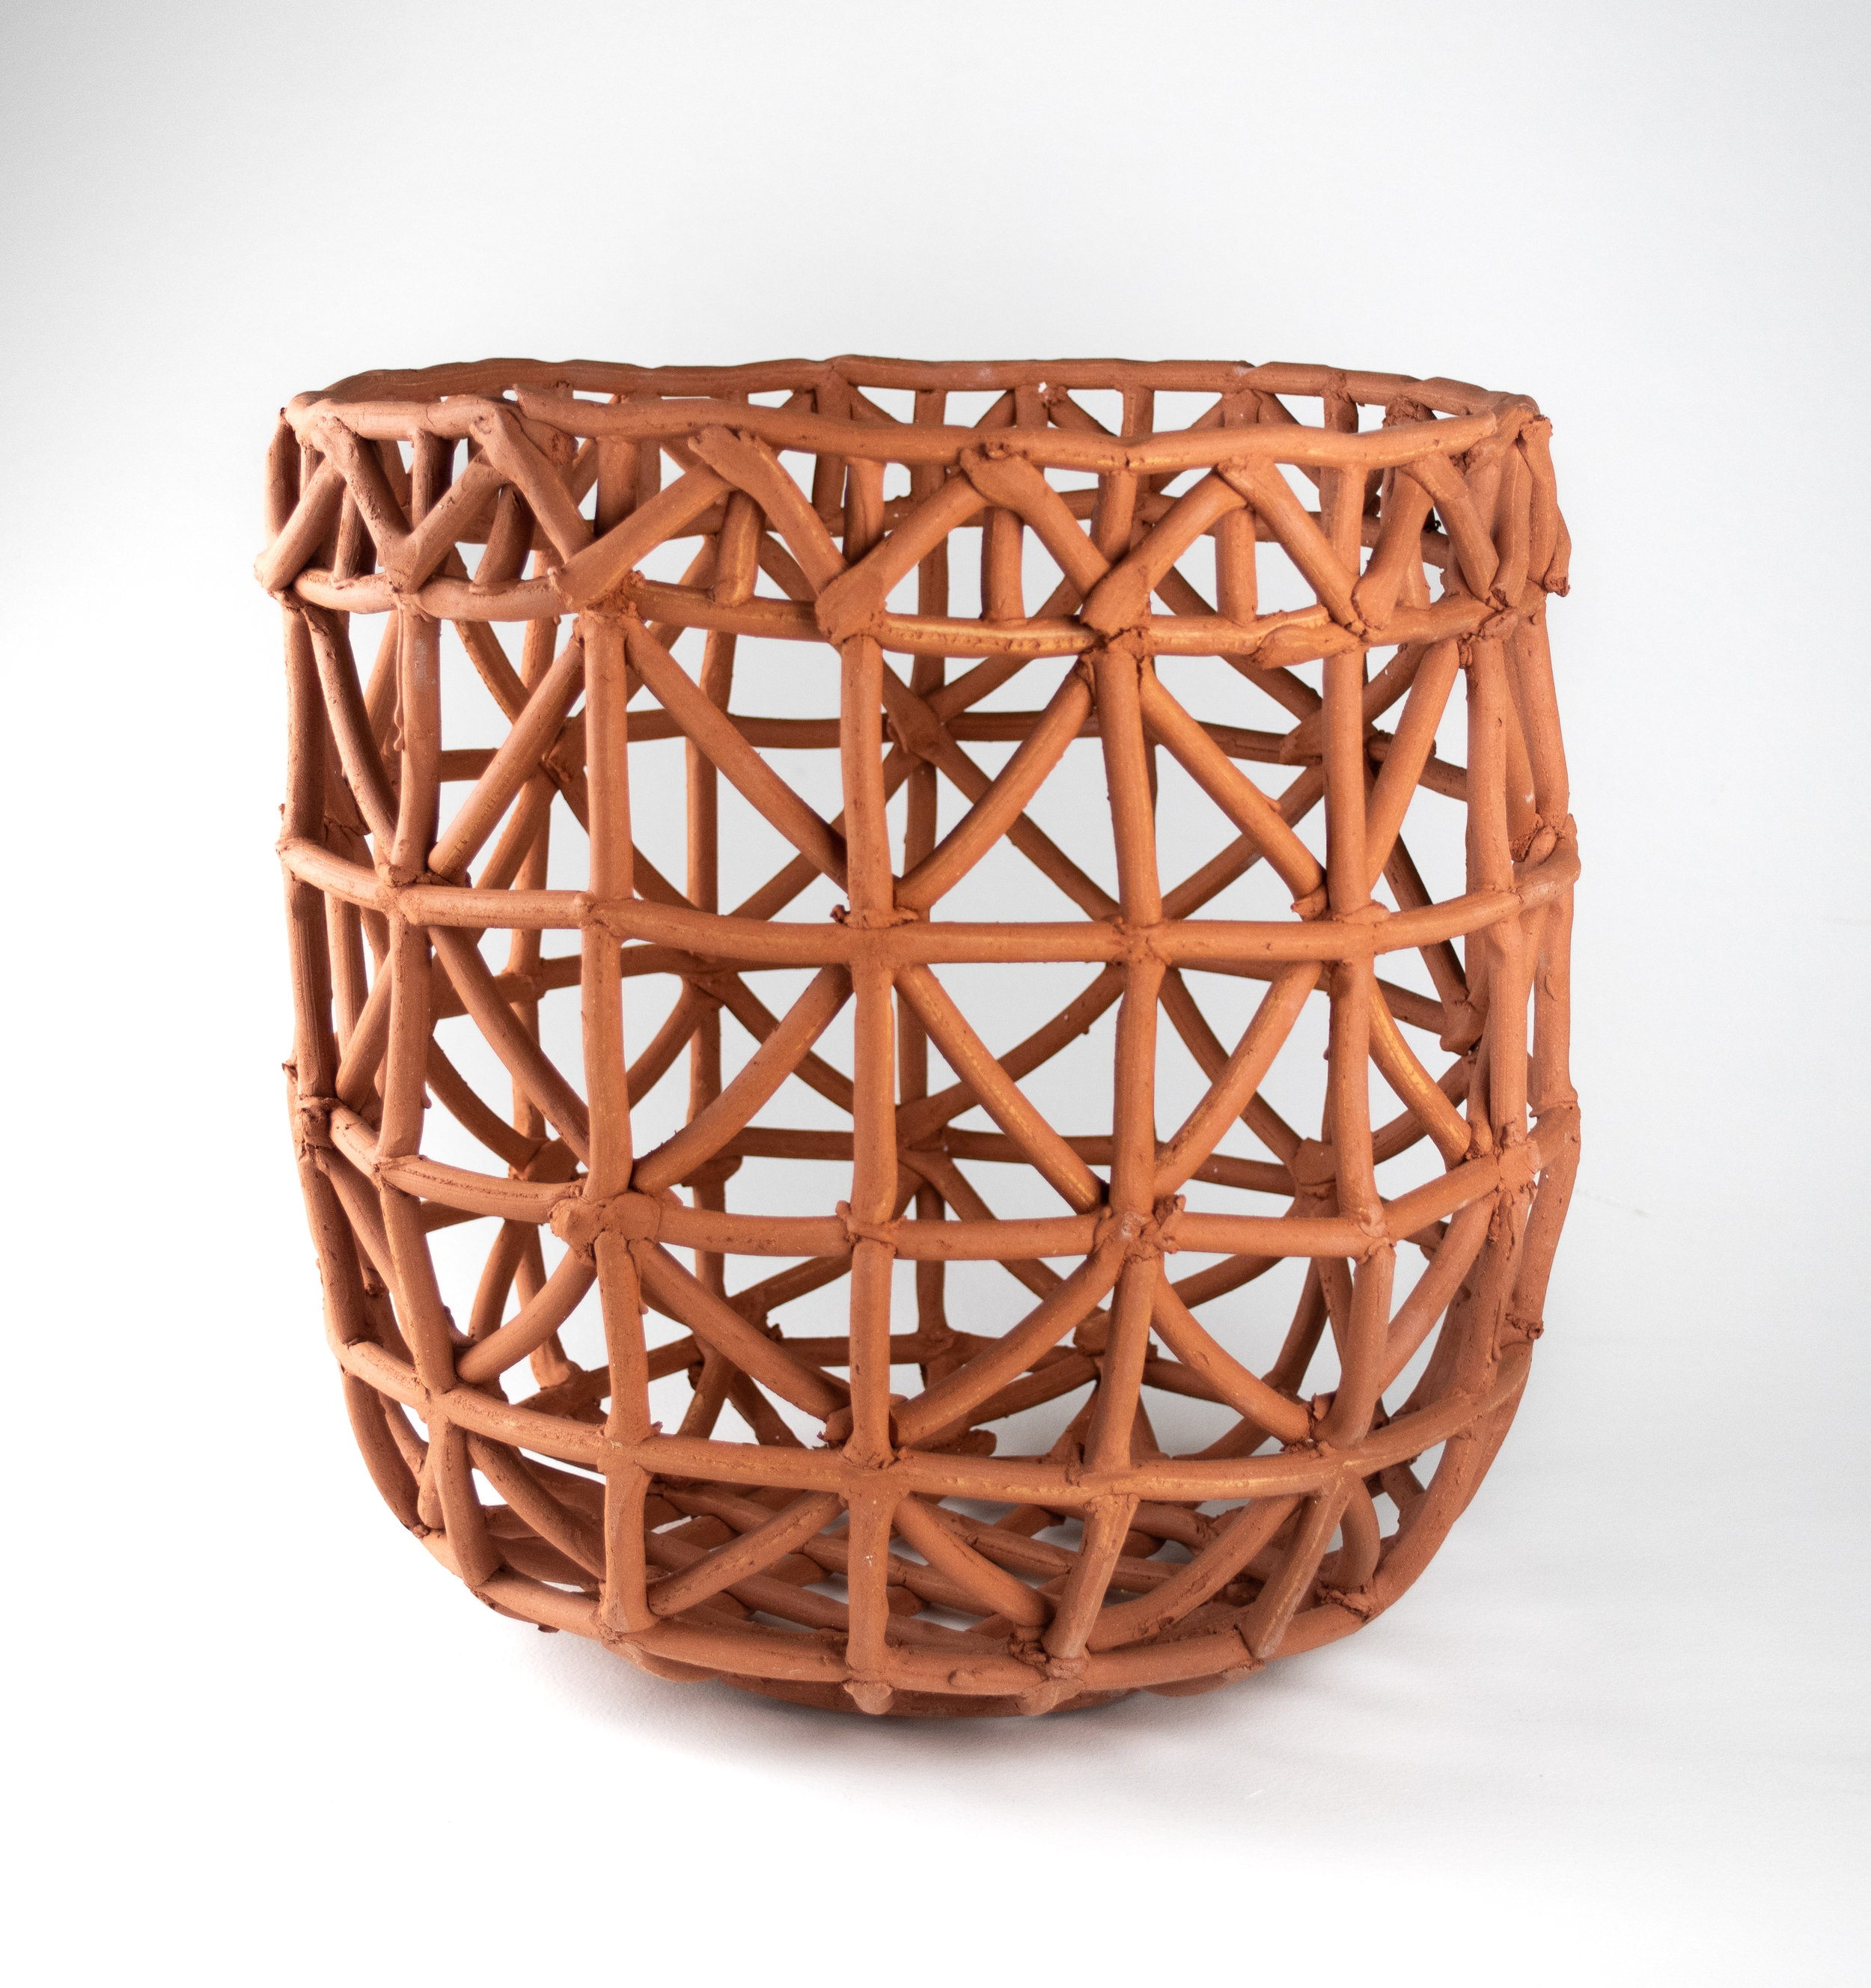 Basket for Storing Dried Rock Trout , 15x22x15, Earthenware, 2019